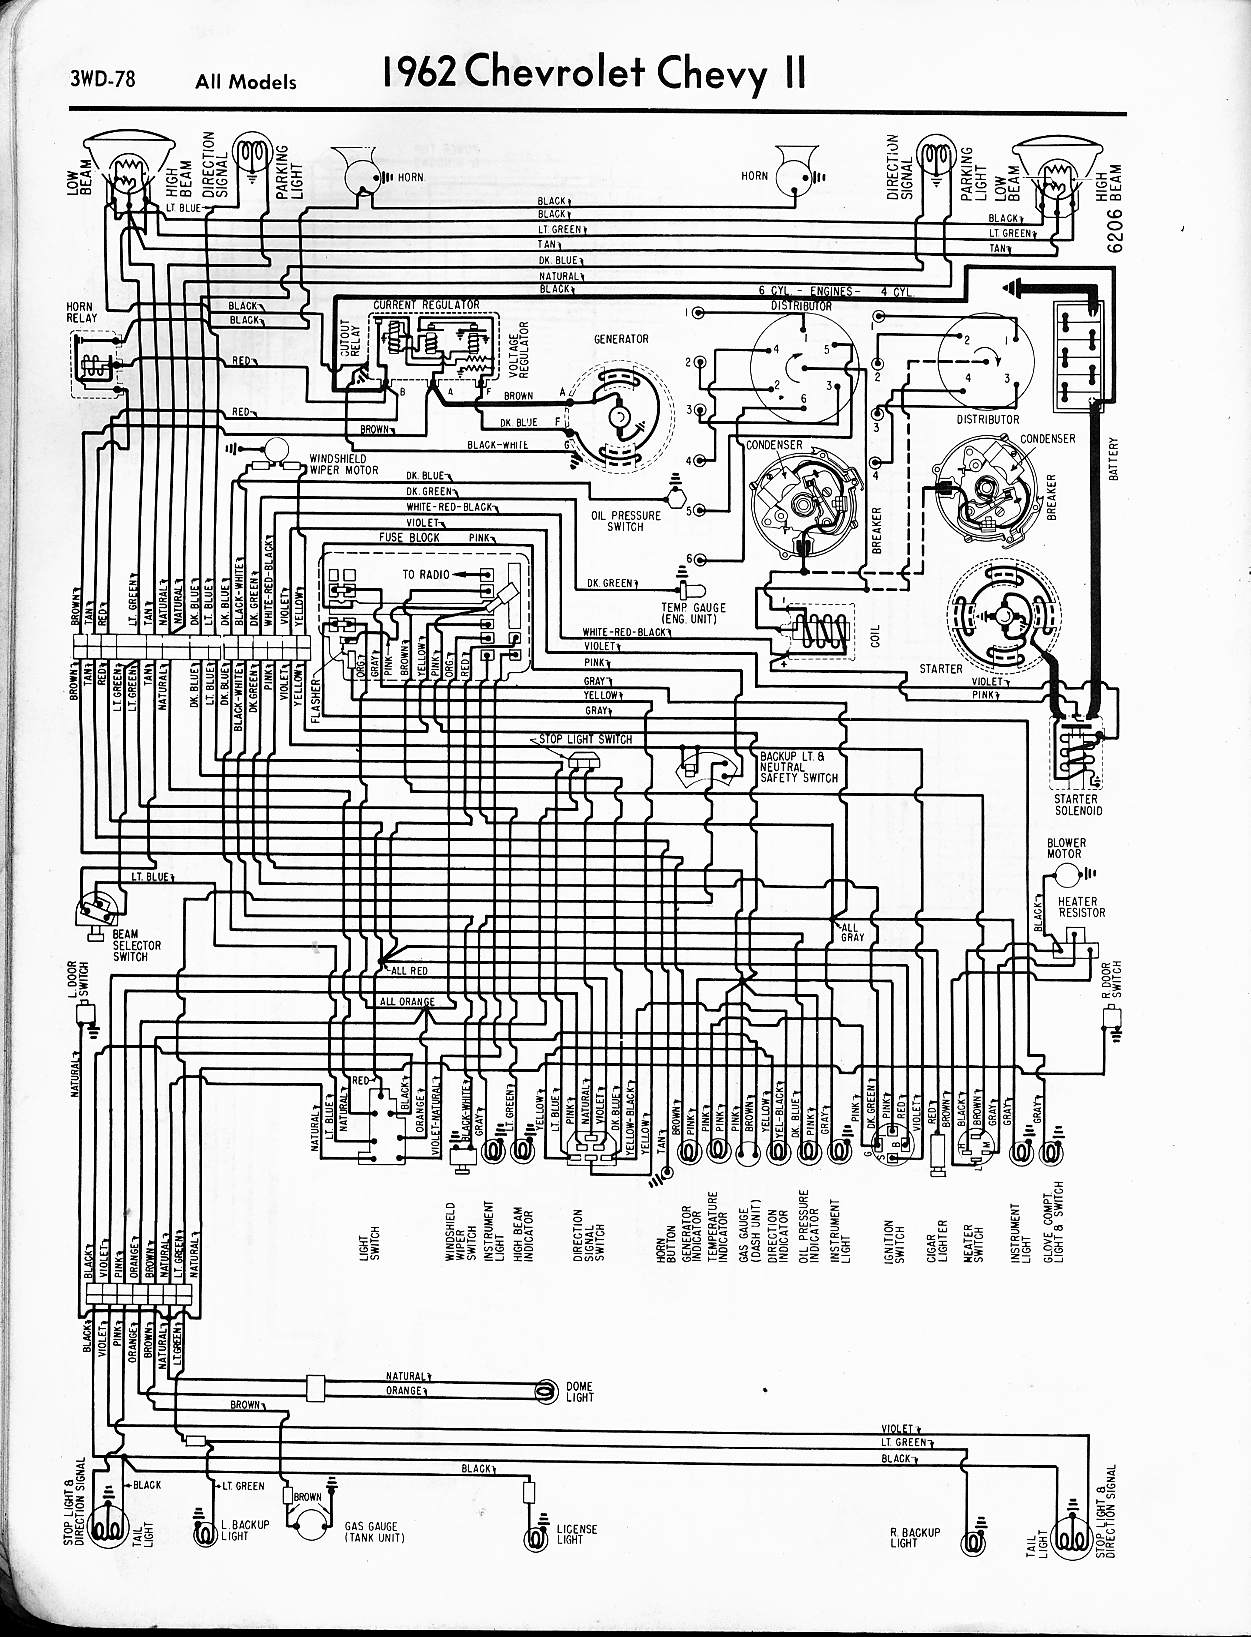 chevy wiring diagrams 1962 chevy ii all models